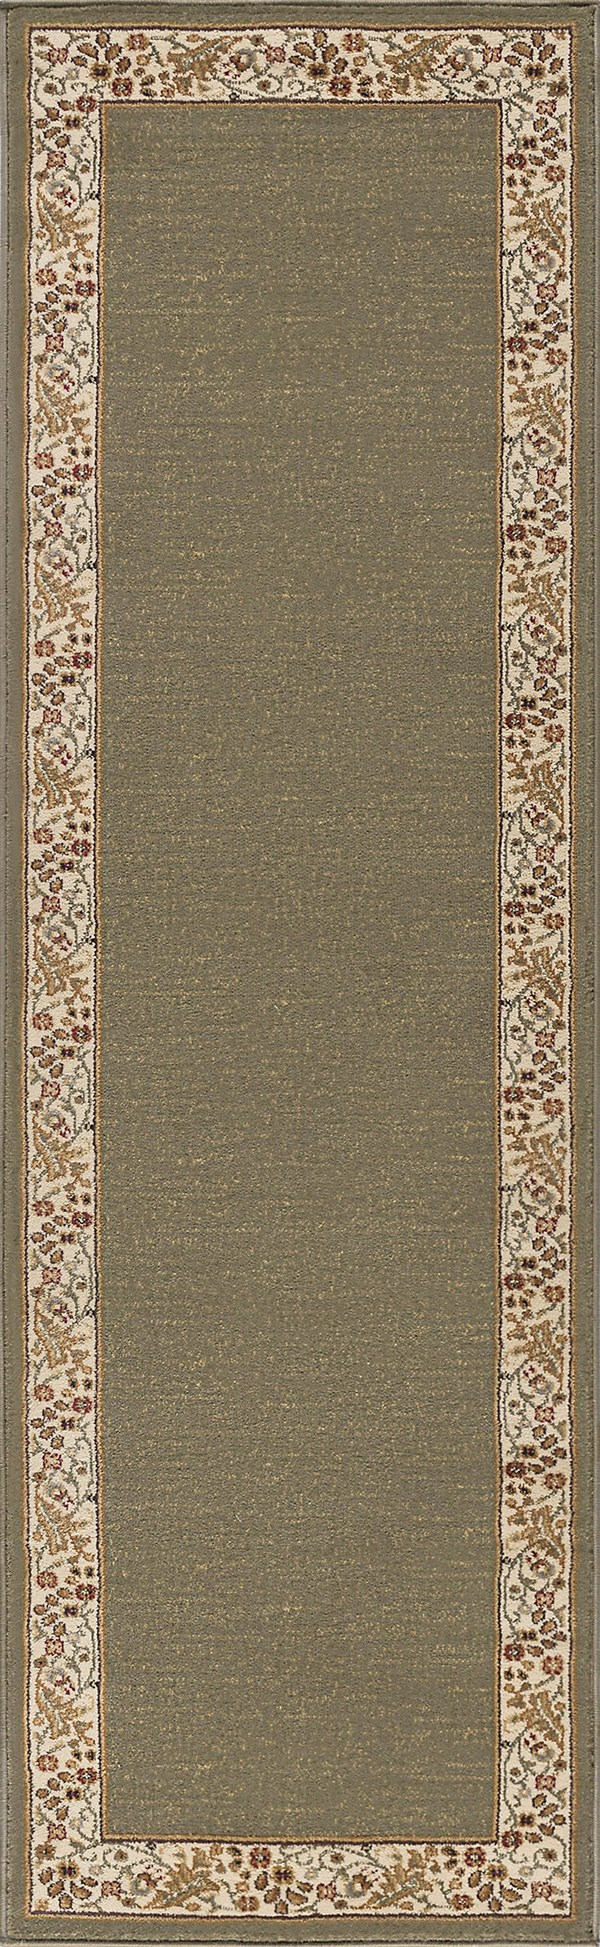 Green (4745) Bordered Area Rug